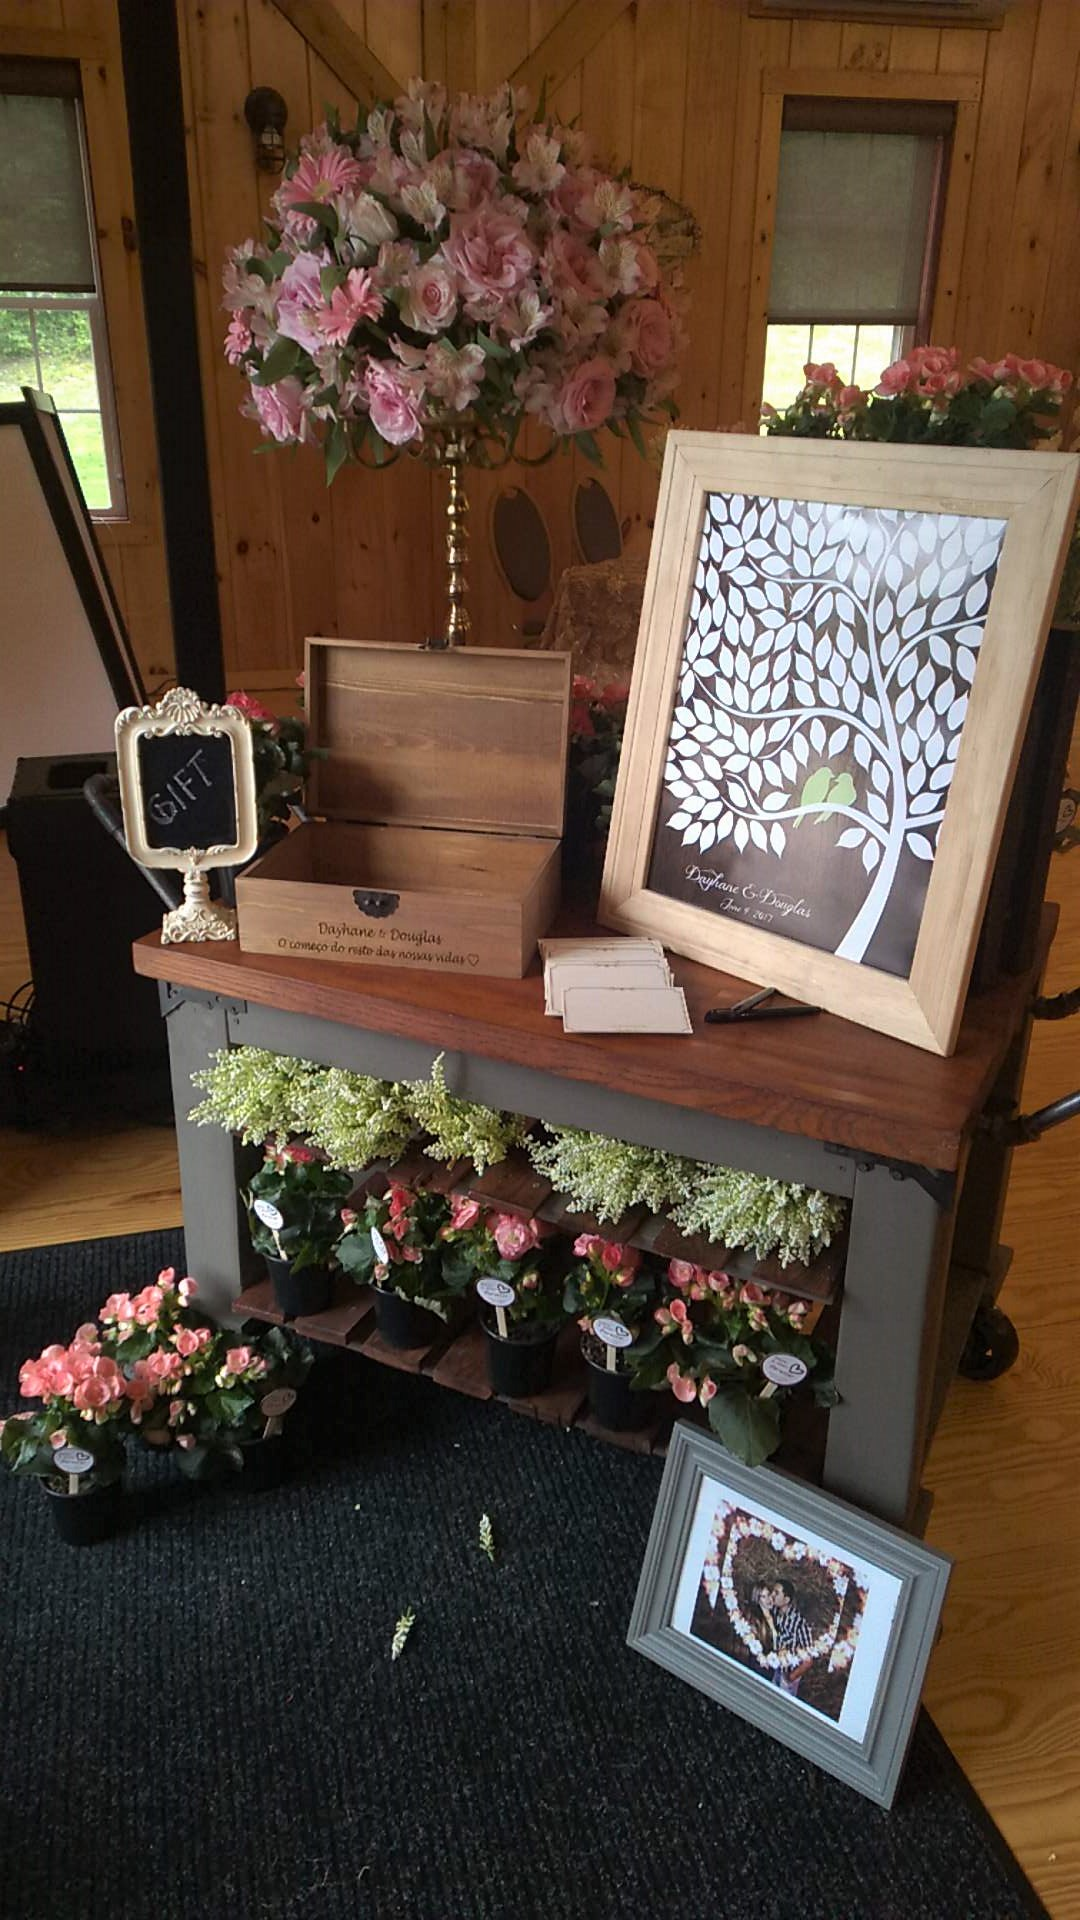 Guest book alternatives include tree pictures where guests each sign a leaf.